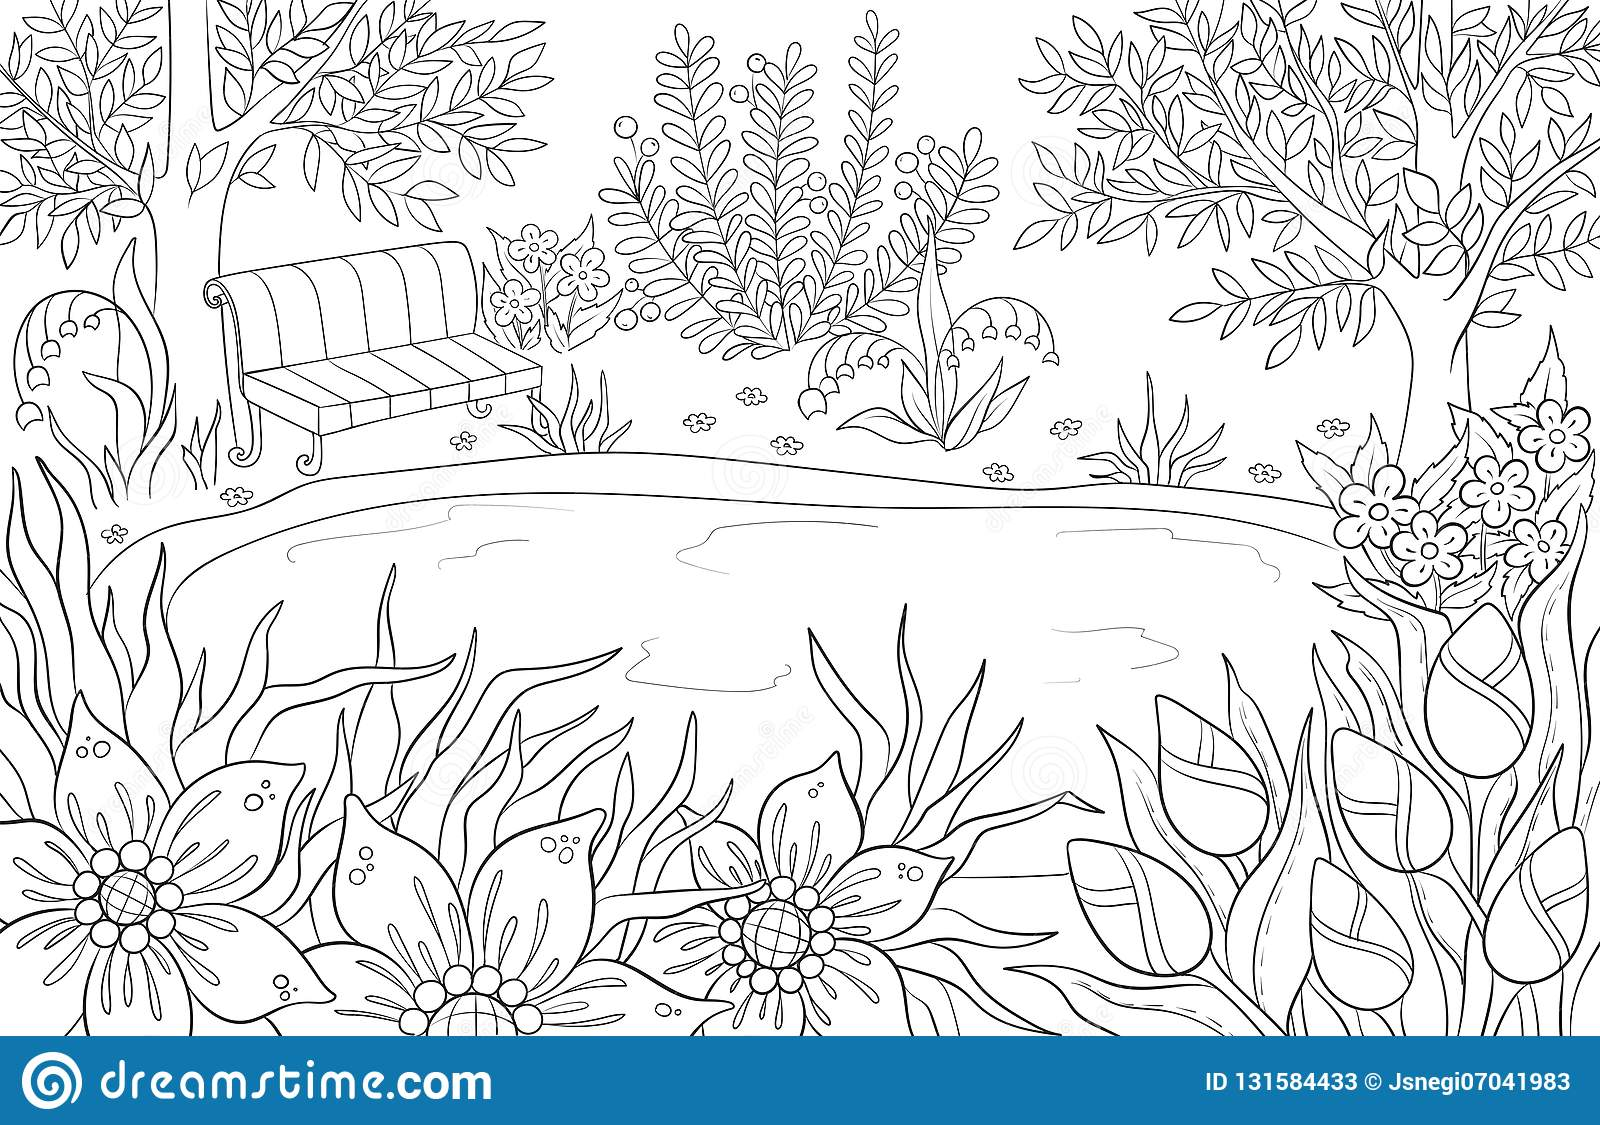 Coloring Page For Adult And Kids Coloring Book Or Bullet